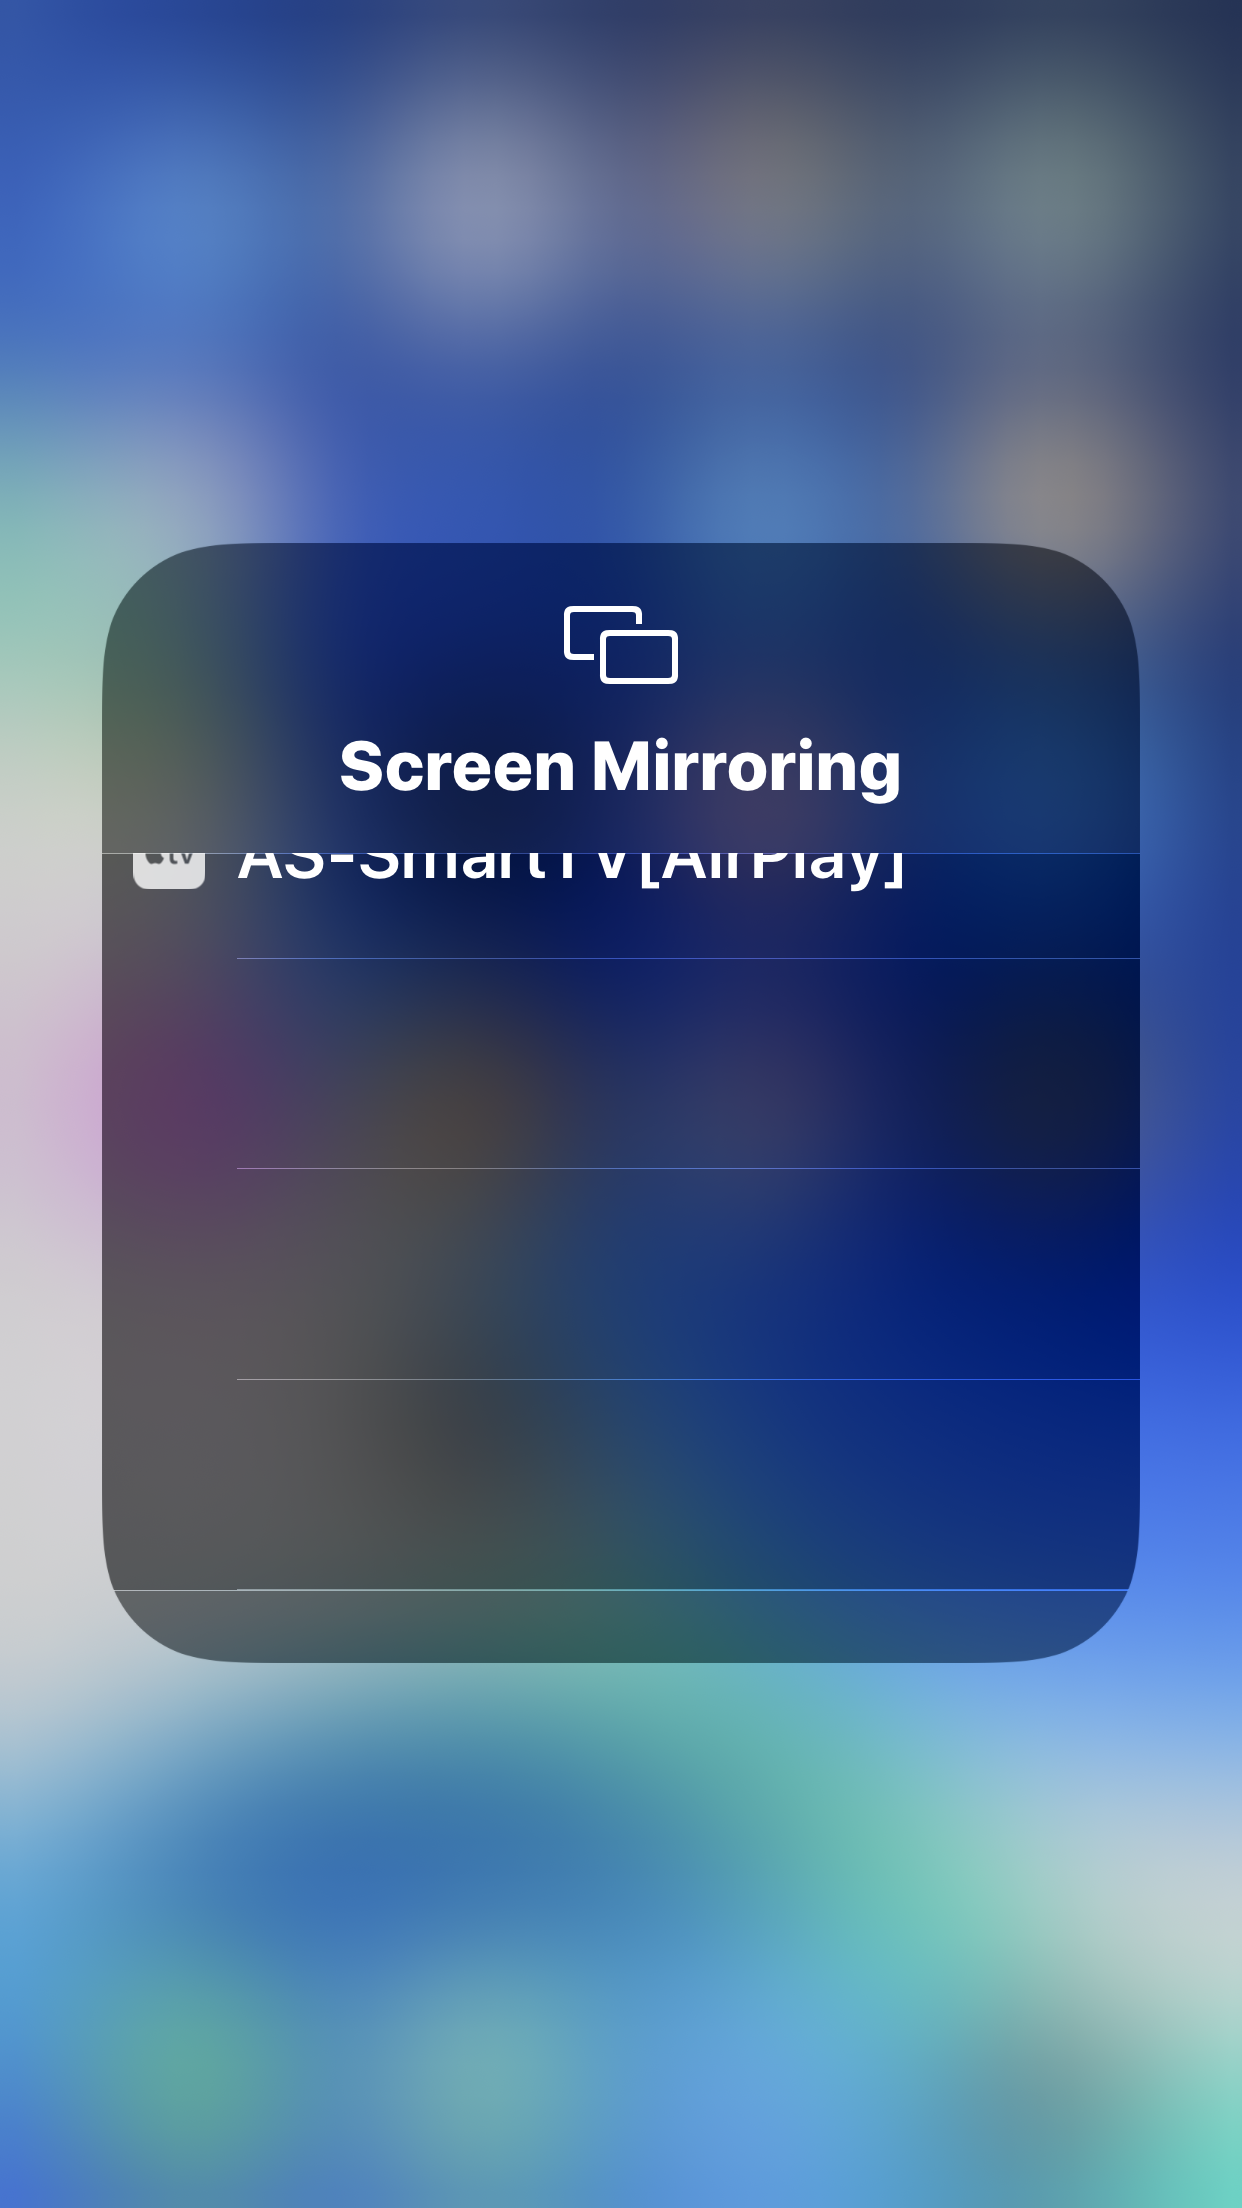 How to Phone Mirroring on Smart TV? #keefto